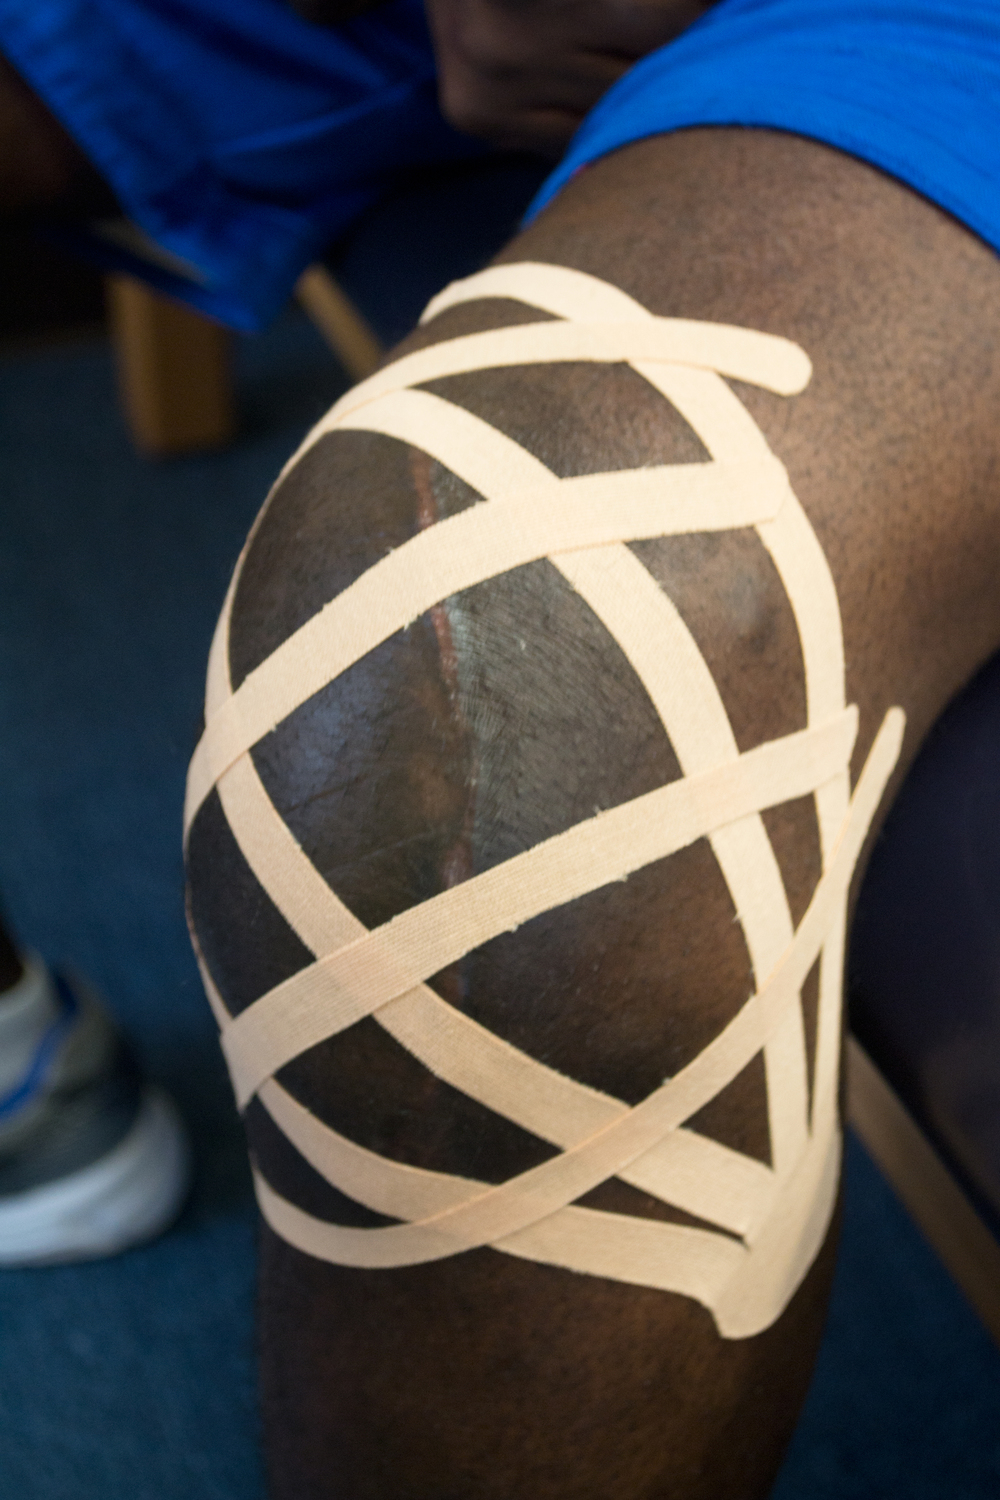 KINESIO TAPING TO HELP WITH SWELLING